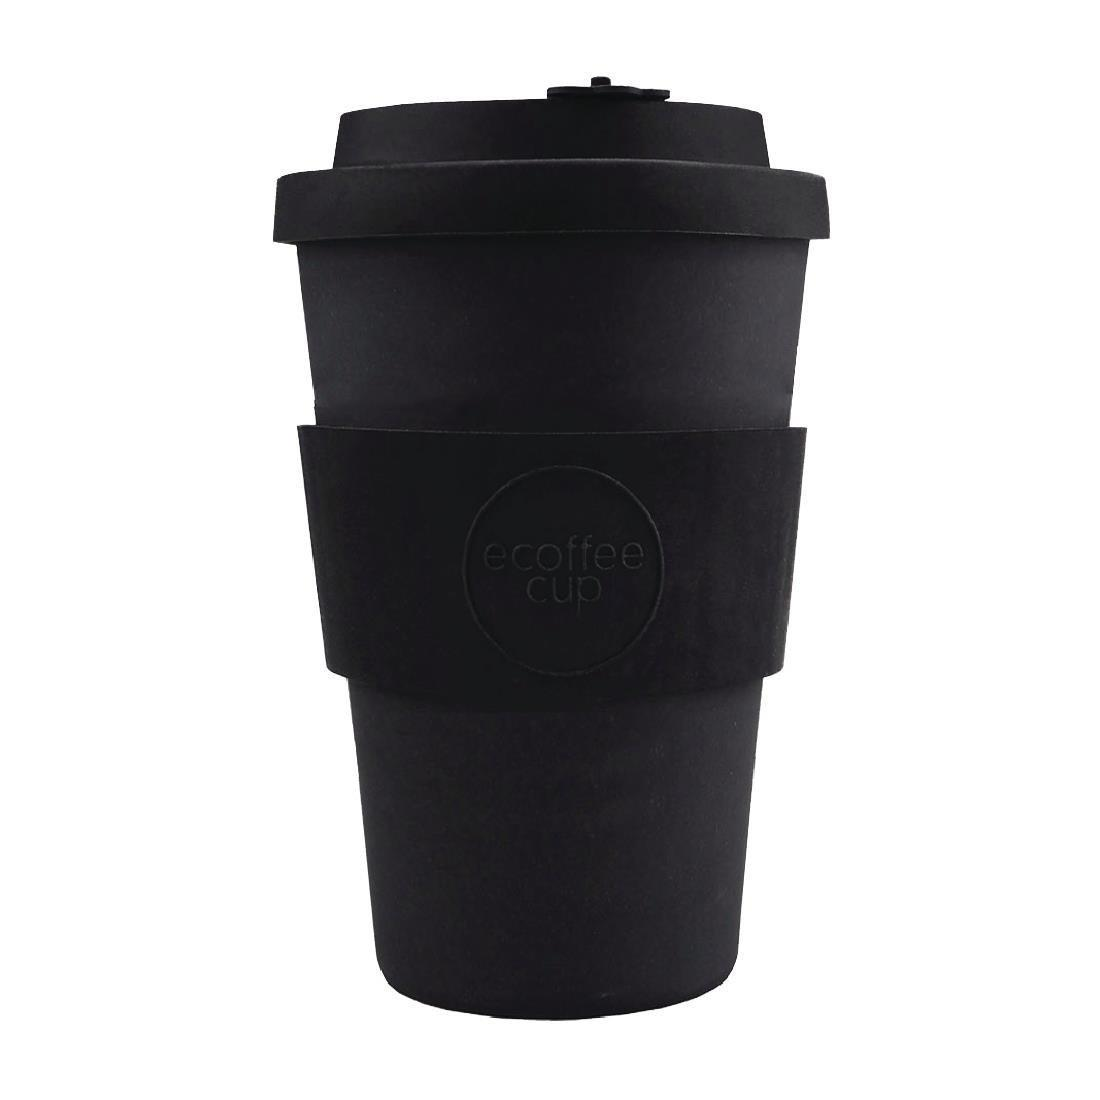 Ecoffee Cup Bamboo Reusable Coffee Cup Kerr & Napier Black 14oz - Each - DY493